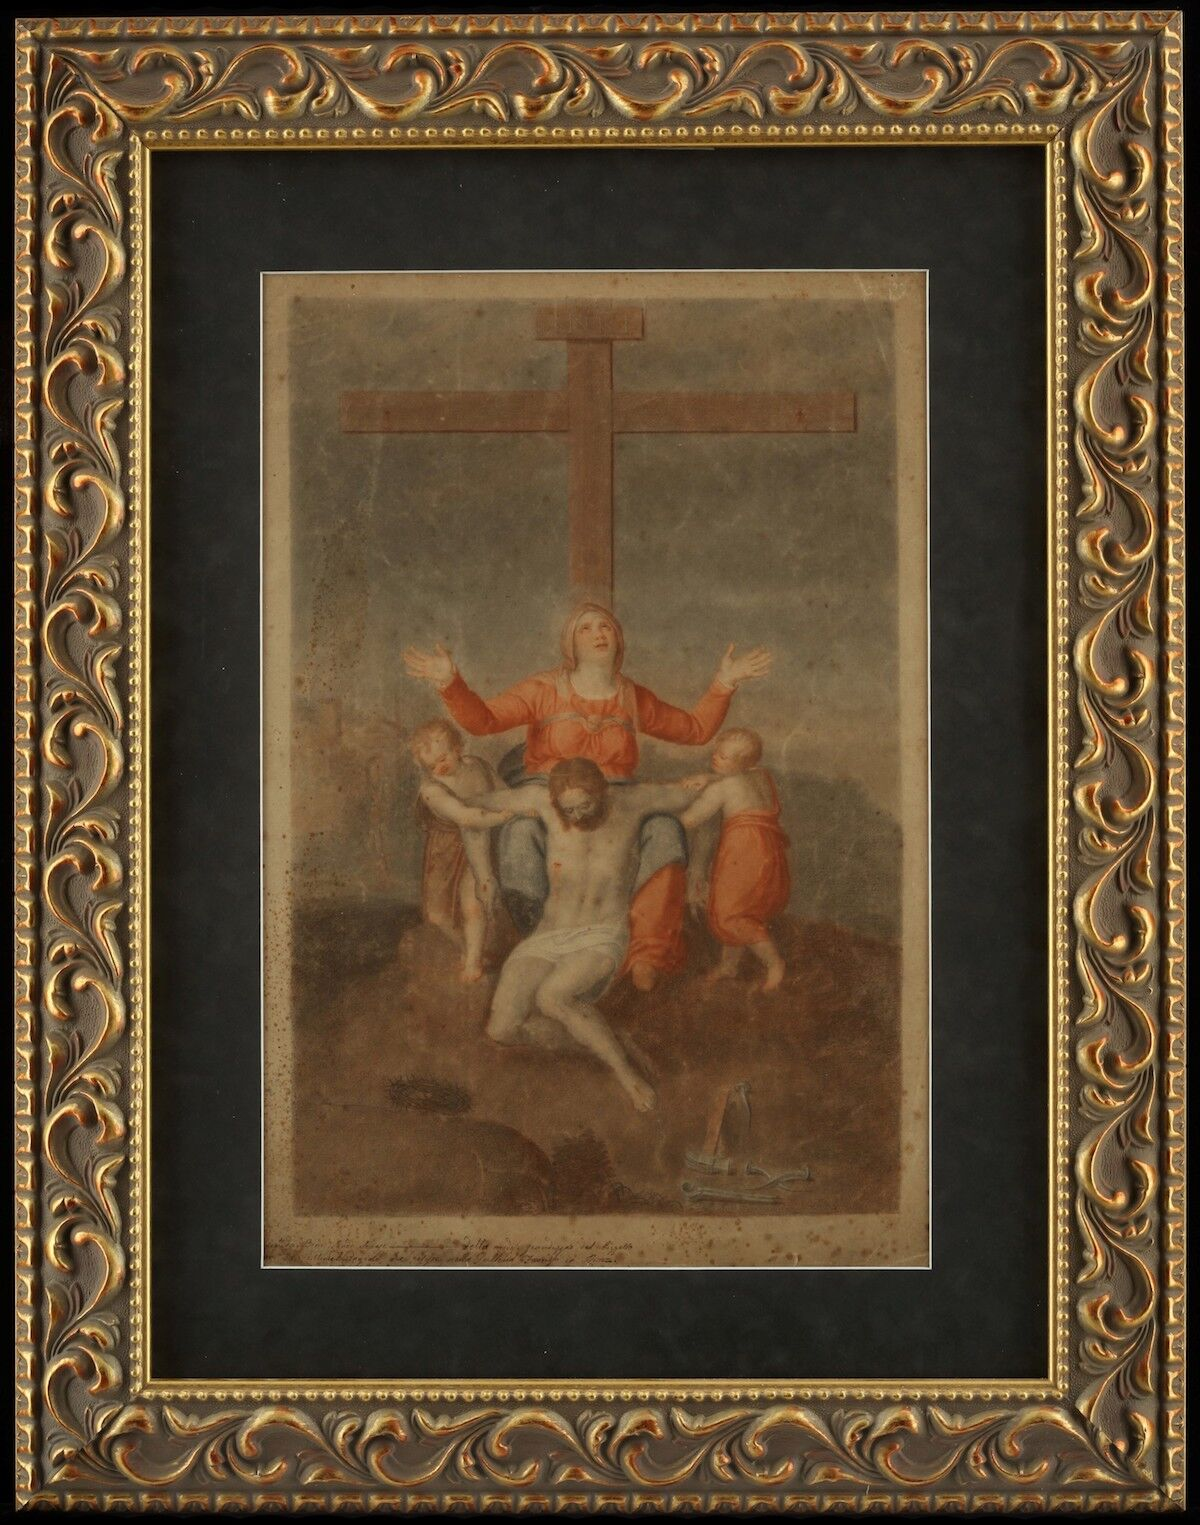 Michelangelo, Crucifixion, date unknown. Courtesy Yulong- Eco-Materials Ltd., via Global News Wire.